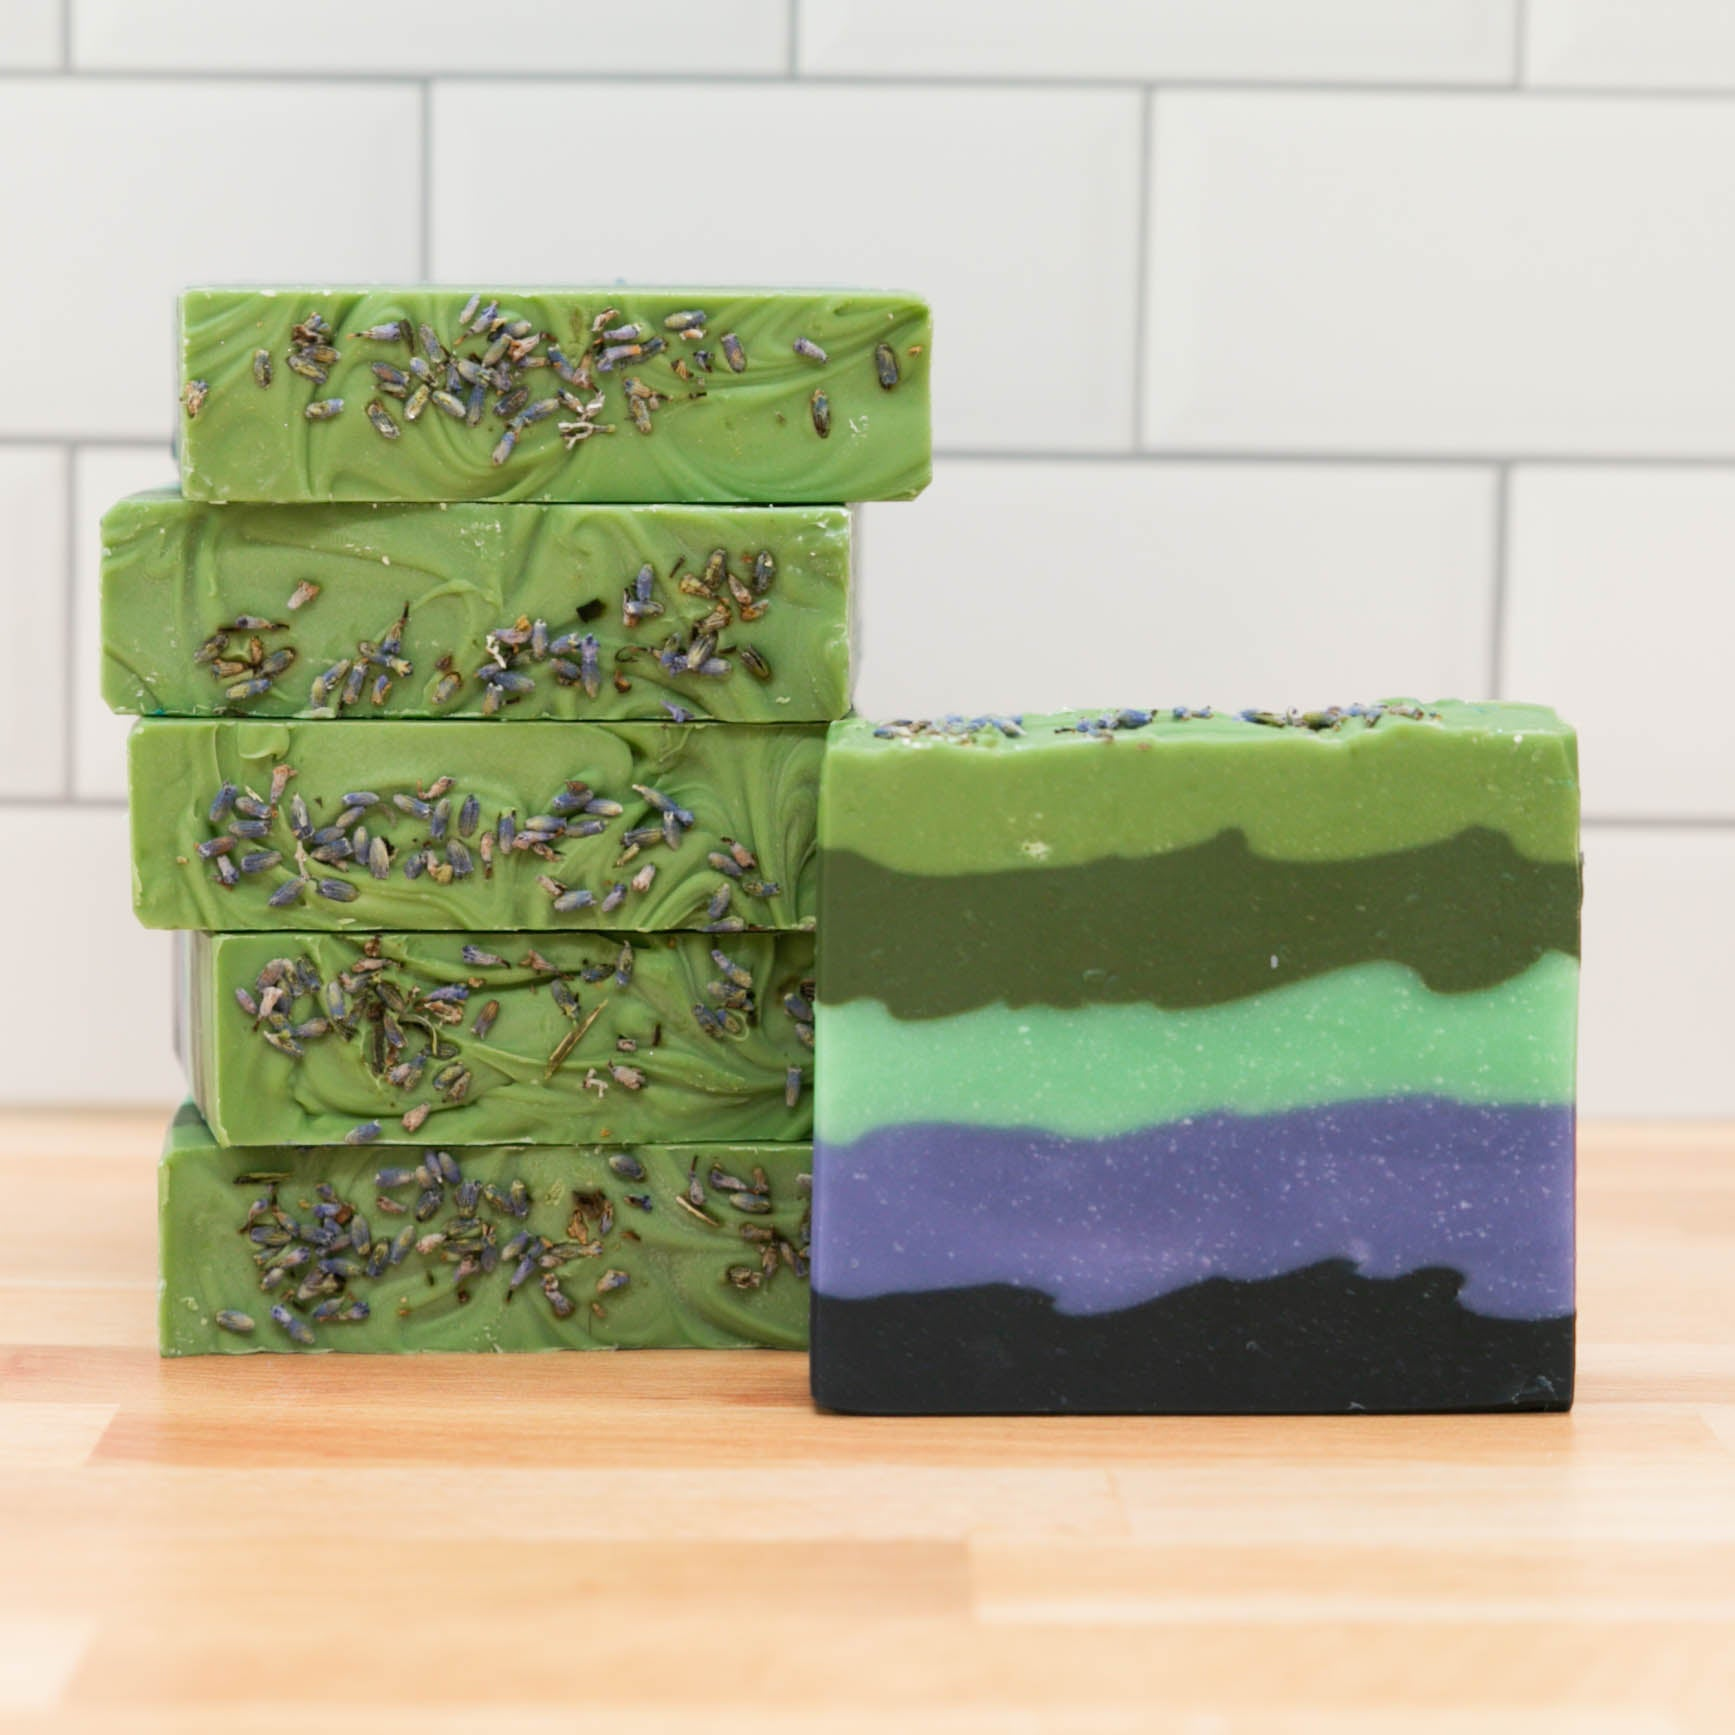 Petrichor Artisan Soap